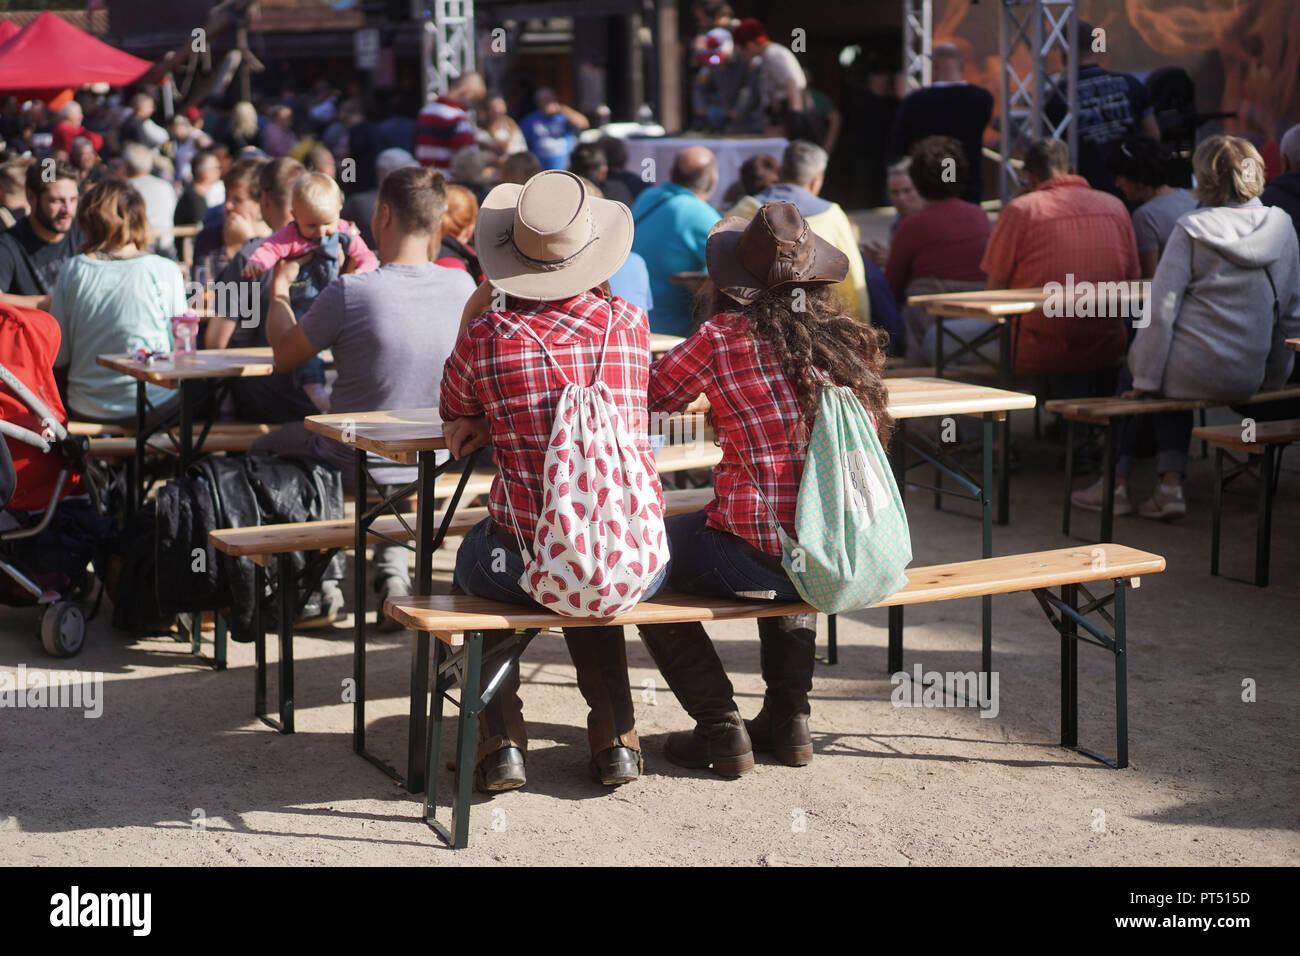 Templin, Brandenburg. 06th Oct, 2018. 06 October 2018, Germany, Templin: Two visitors are dressed in a cowboy look at the first 'Brandenburg Barbecue Championship' in the 'El Dorado Templin'. A total of eight teams grill around the grill crown. Credit: Jörg Carstensen/dpa/Alamy Live News - Stock Image